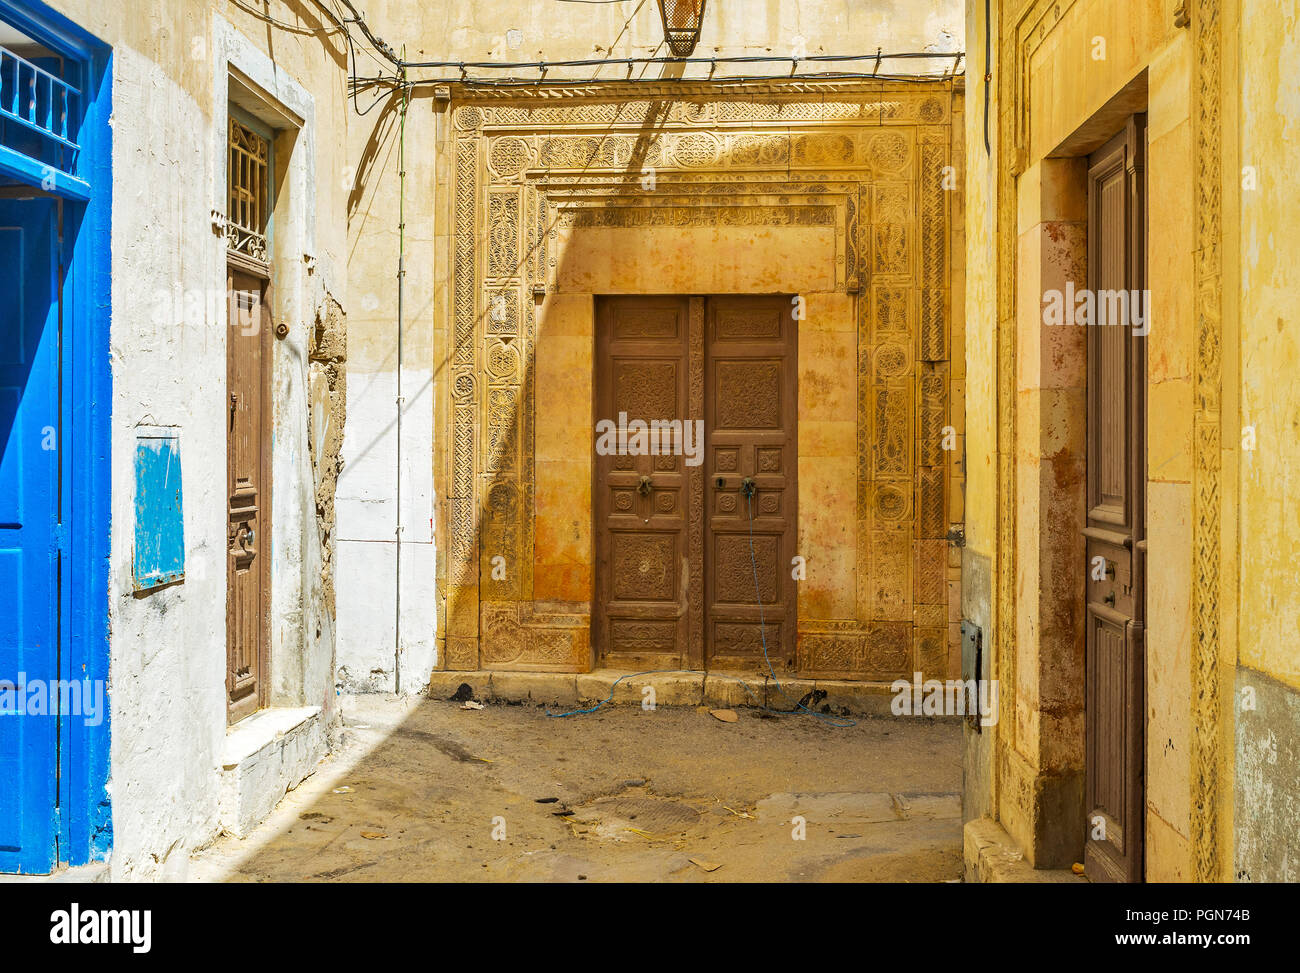 The frontage of the medieval mansion is decorated with fine carved pattern on stone wall and wooden door, Sfax, Tunisia. - Stock Image